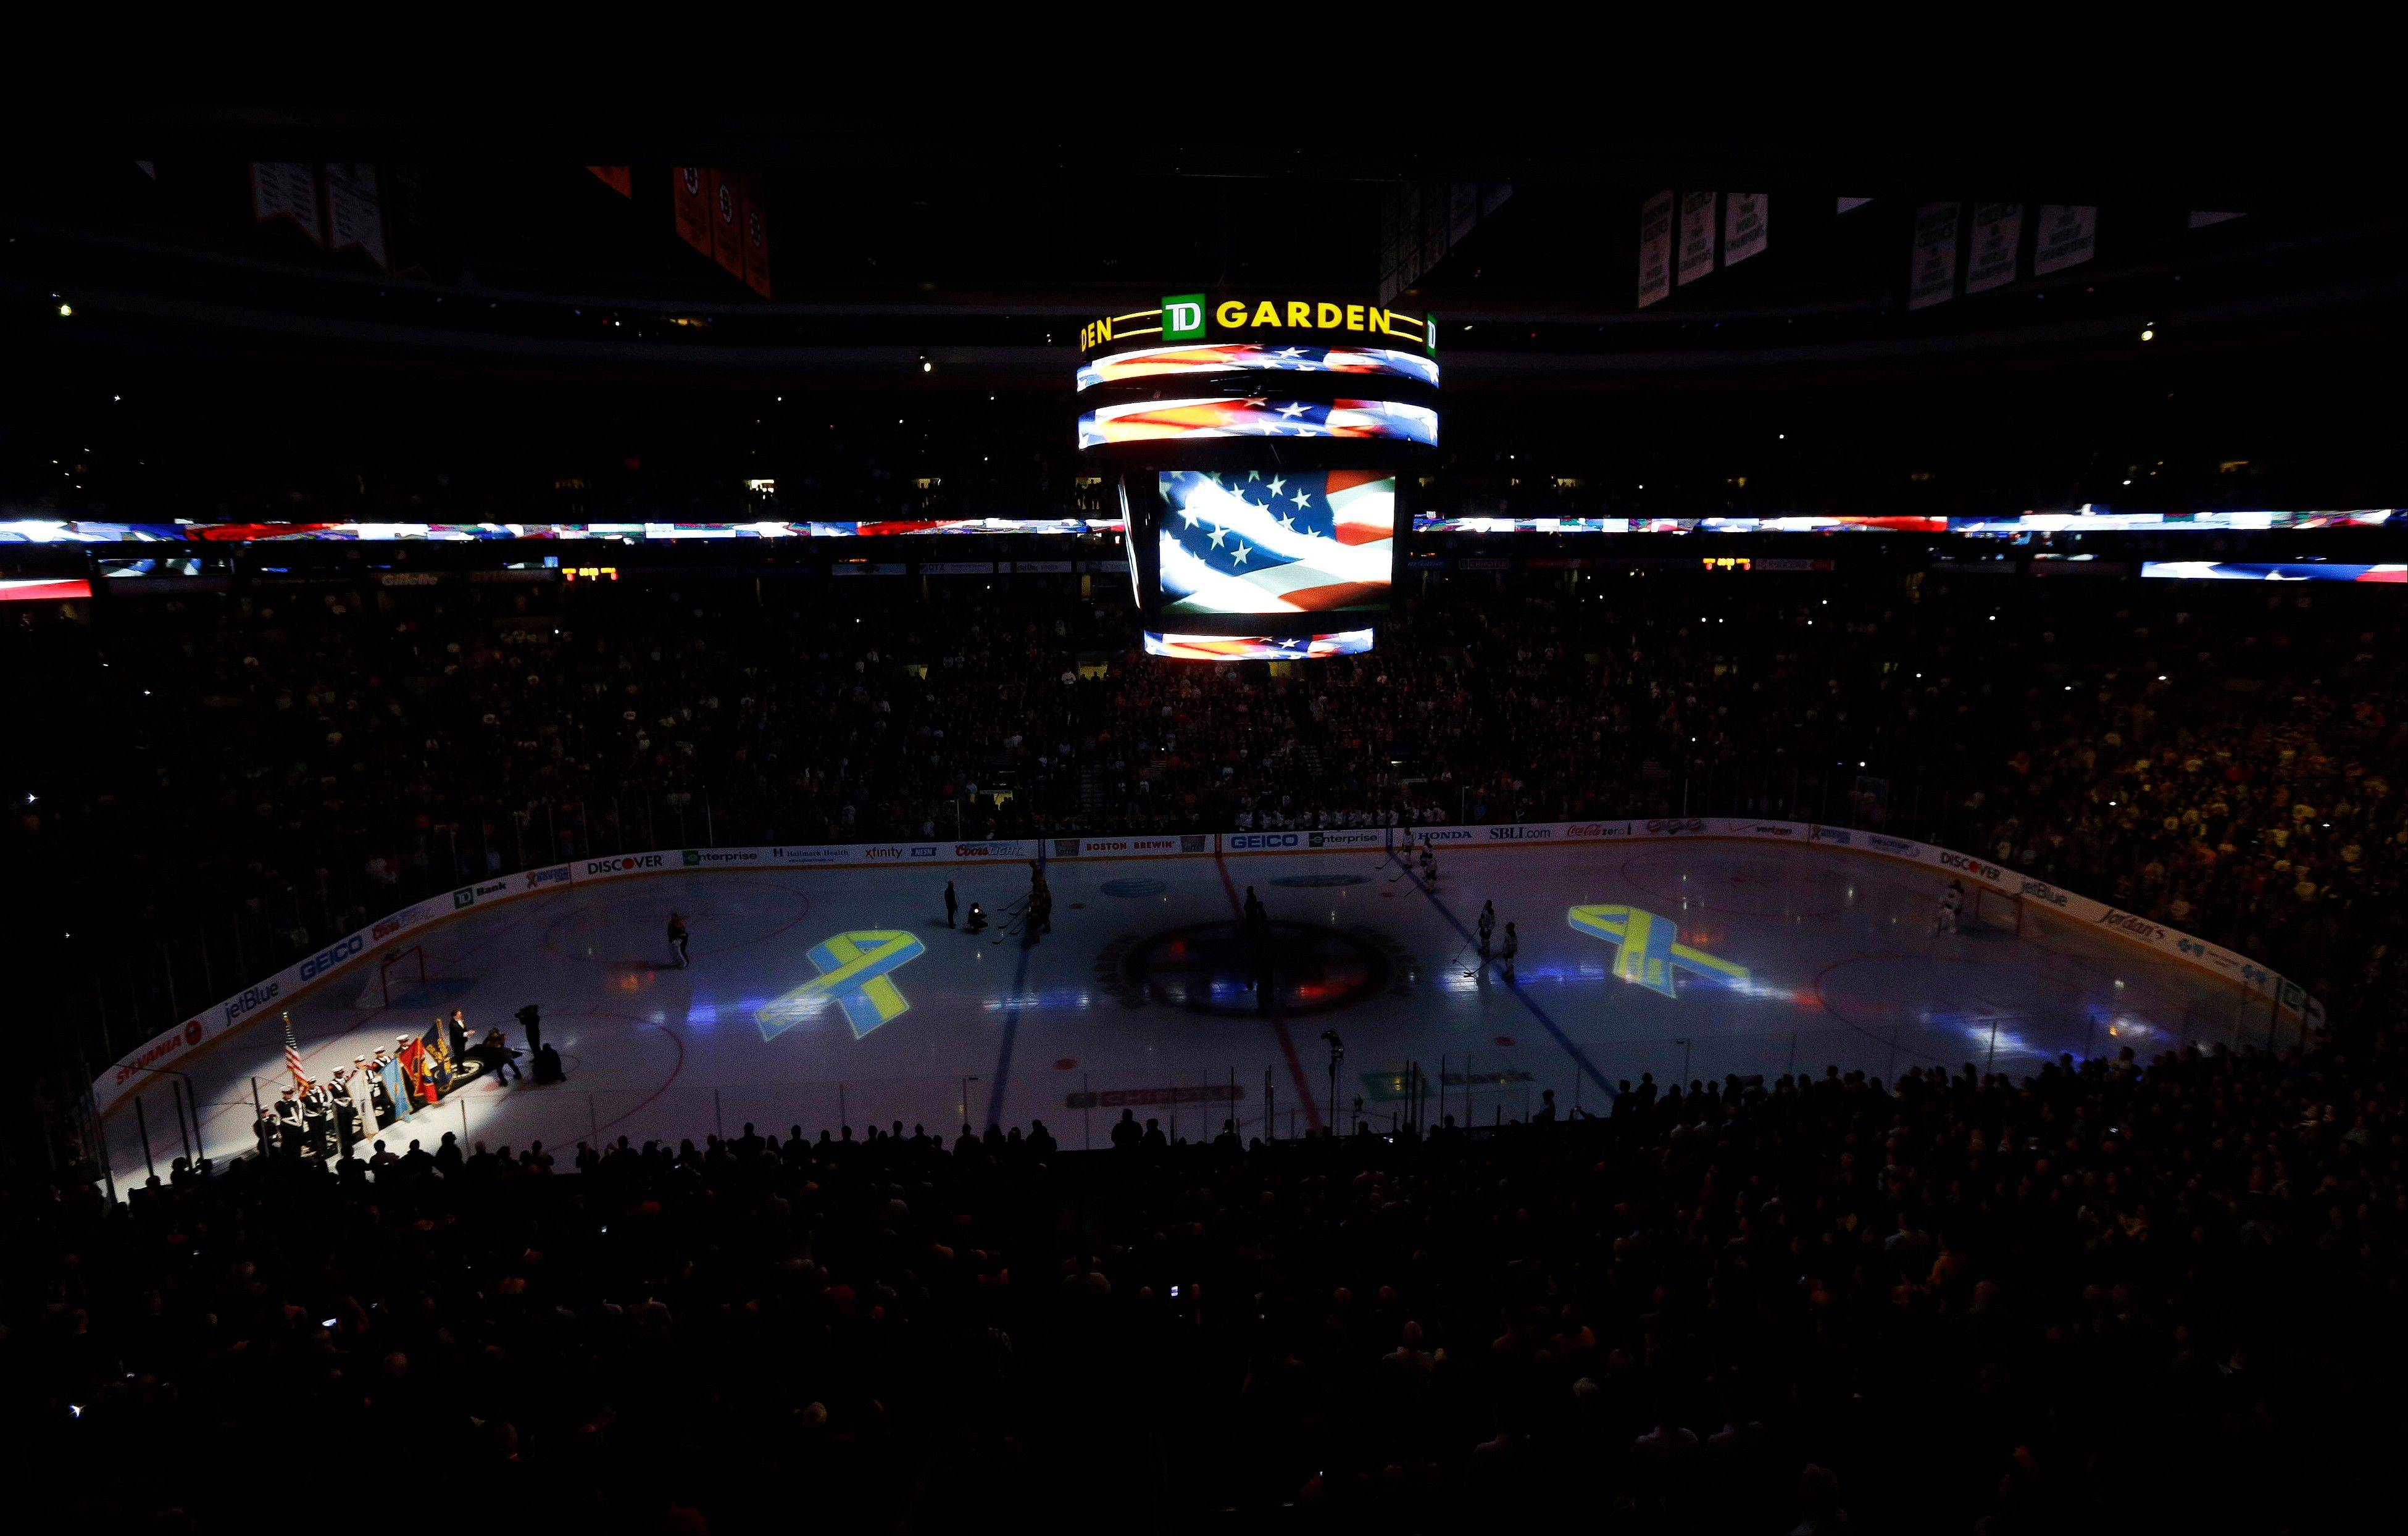 Members of a Boston Fire Department honor guard hold flags during the singing of the national anthem at TD Garden in Boston, Wednesday, April 17, 2013, during a pregame ceremony in the aftermath of Monday's Boston Marathon bombings.